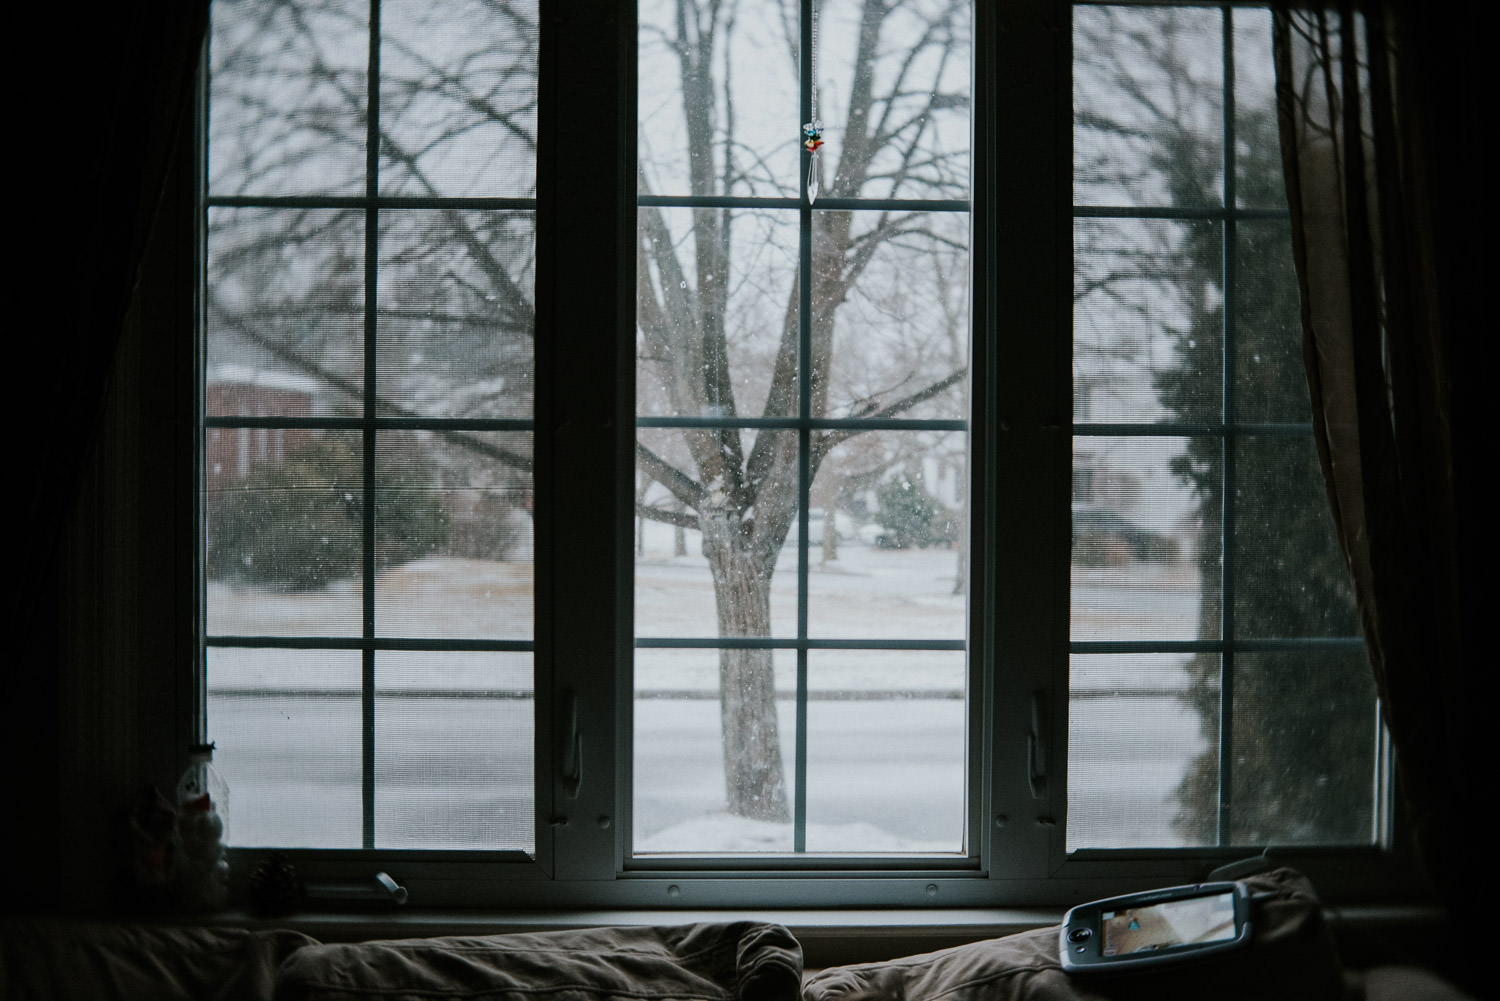 A snowy day outside the window.